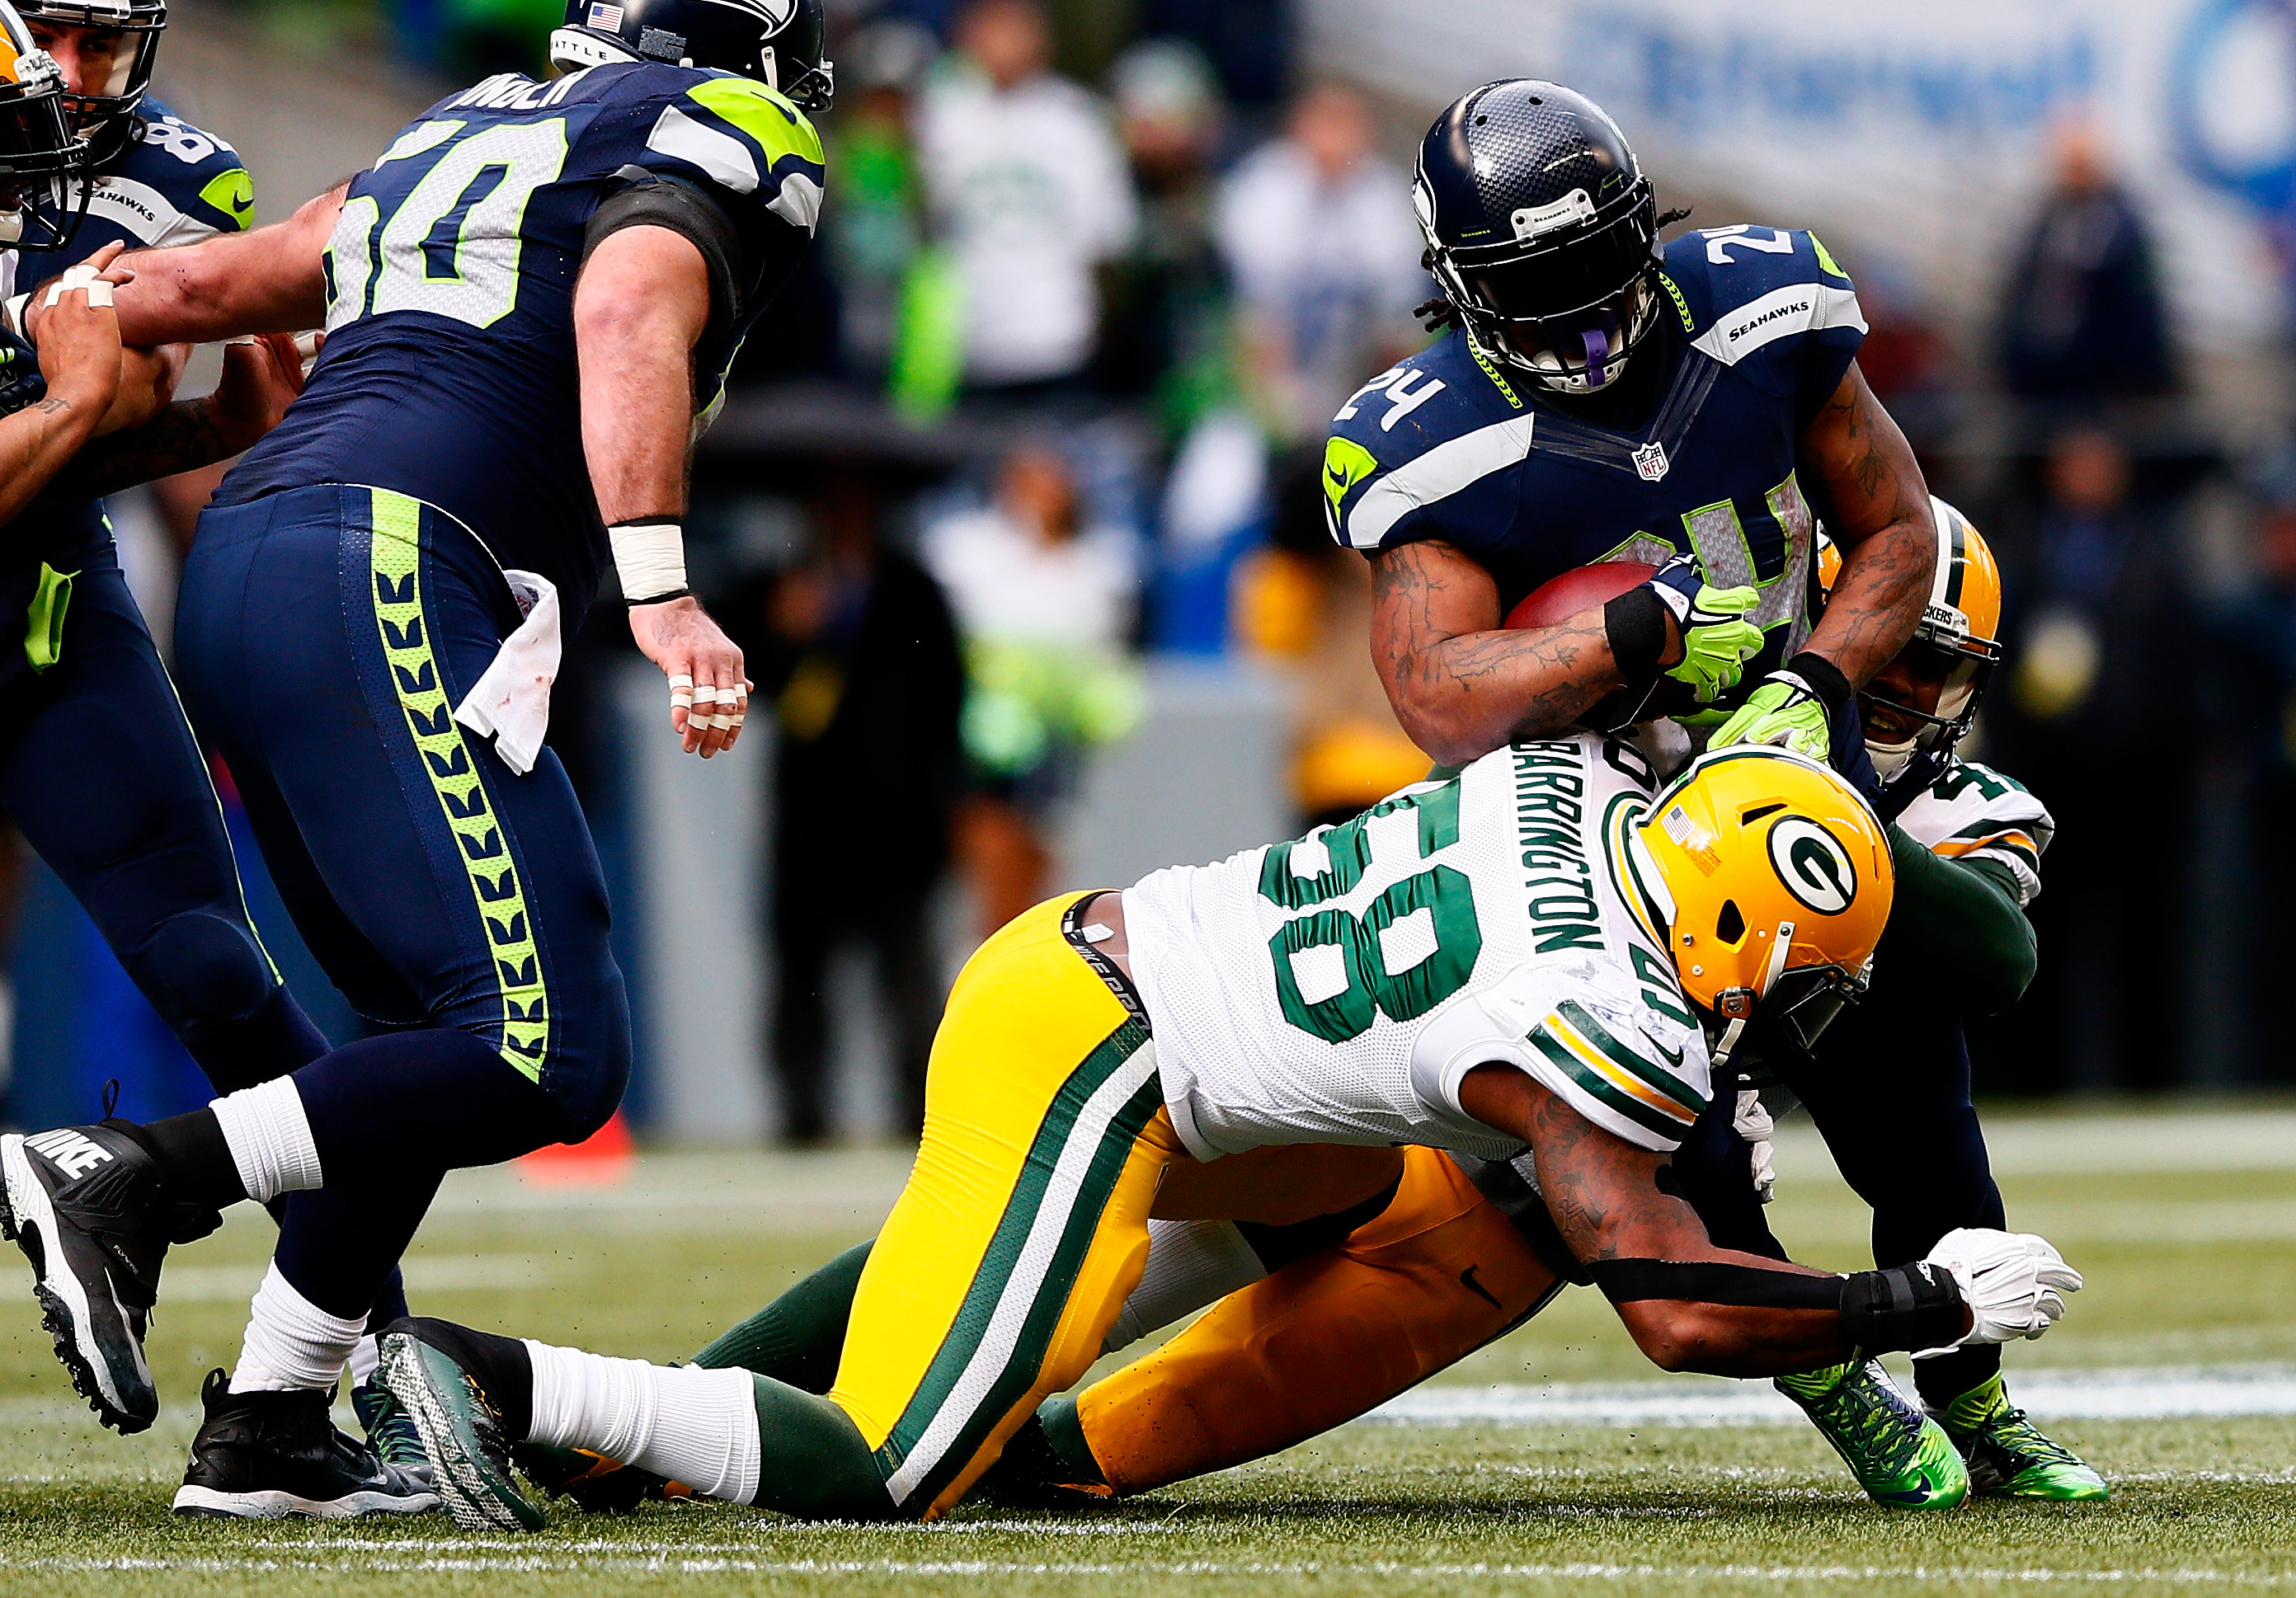 461735796-nfc-championship-green-bay-packers-v-seattle-seahawks.jpg